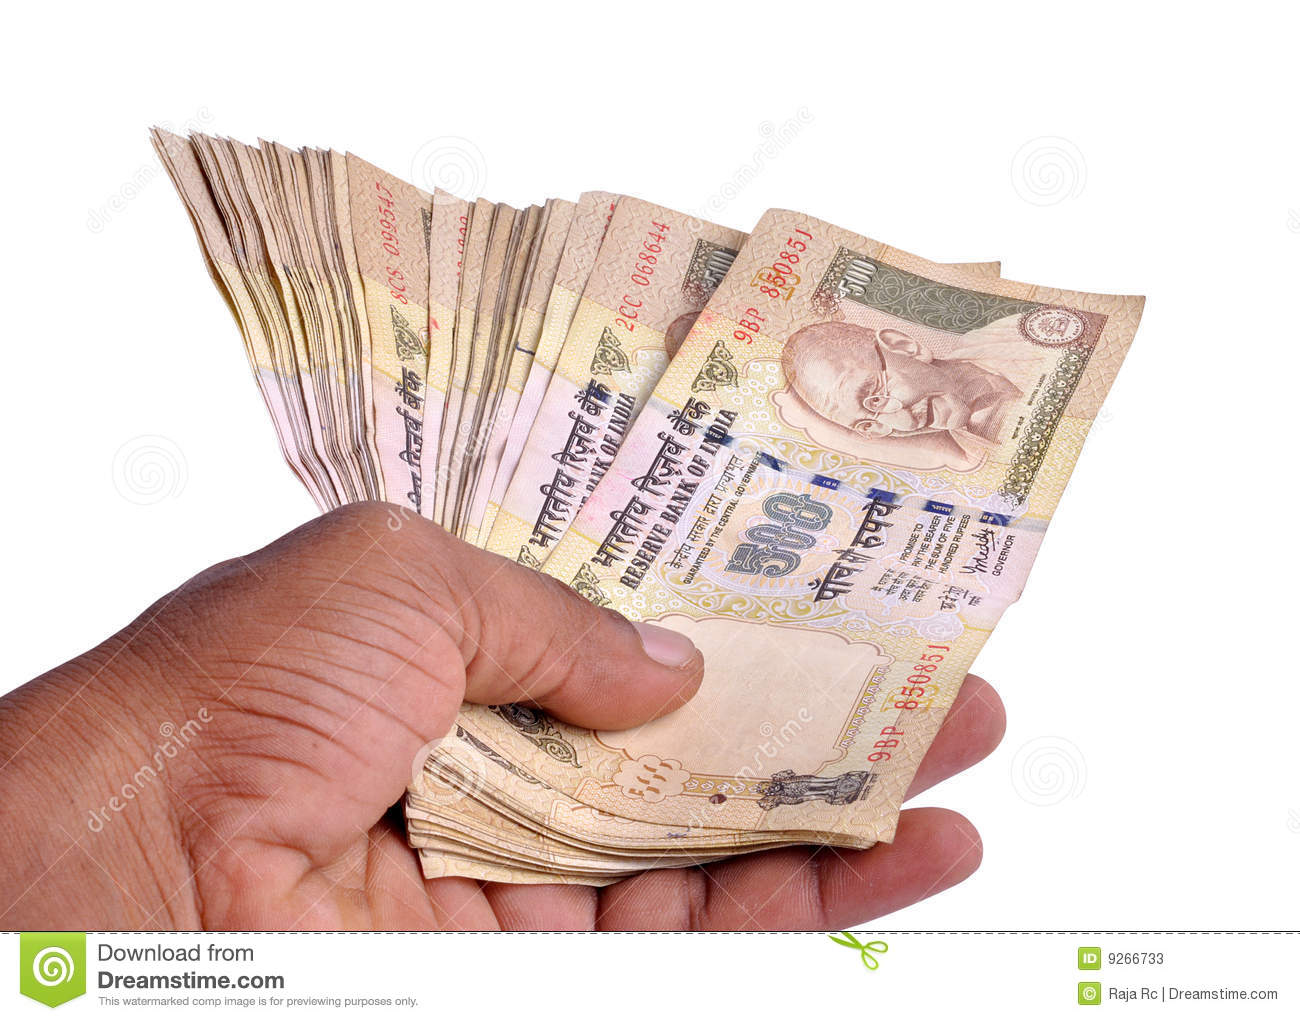 Forex trading in india legal